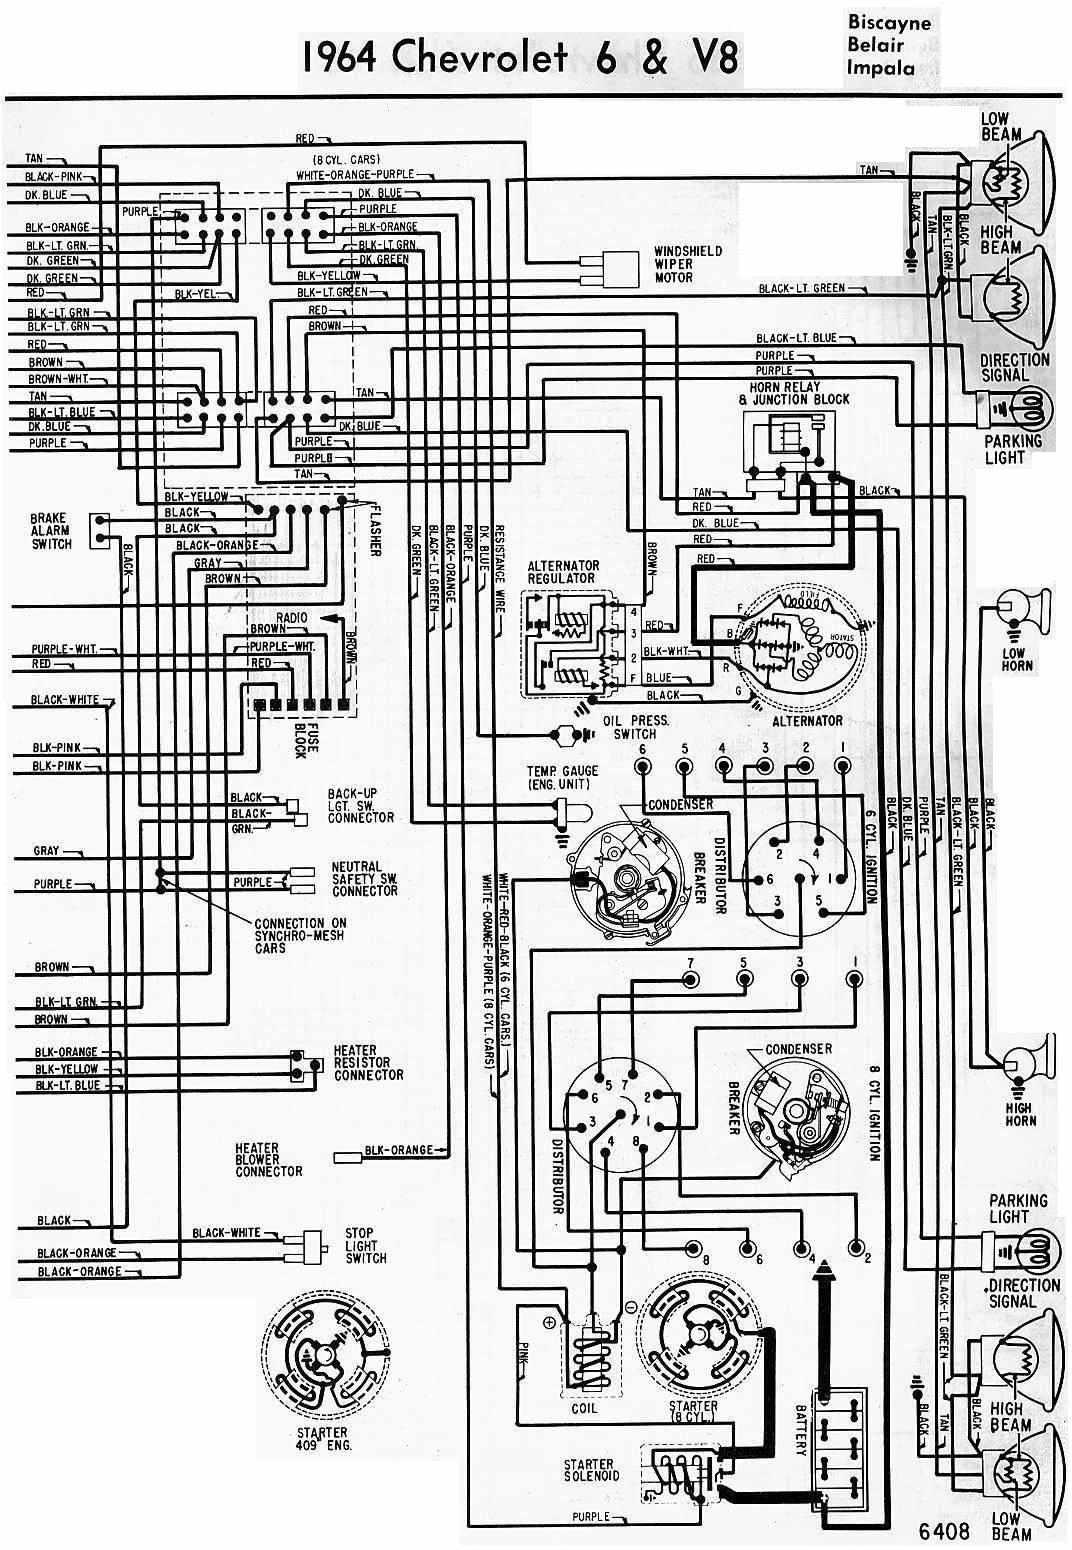 Electrical+Wiring+Diagram+Of+1964+Chevrolet+6+And+V8 1964 bel air wire diagram colors incorrect chevytalk free 1964 impala wiring diagram at n-0.co